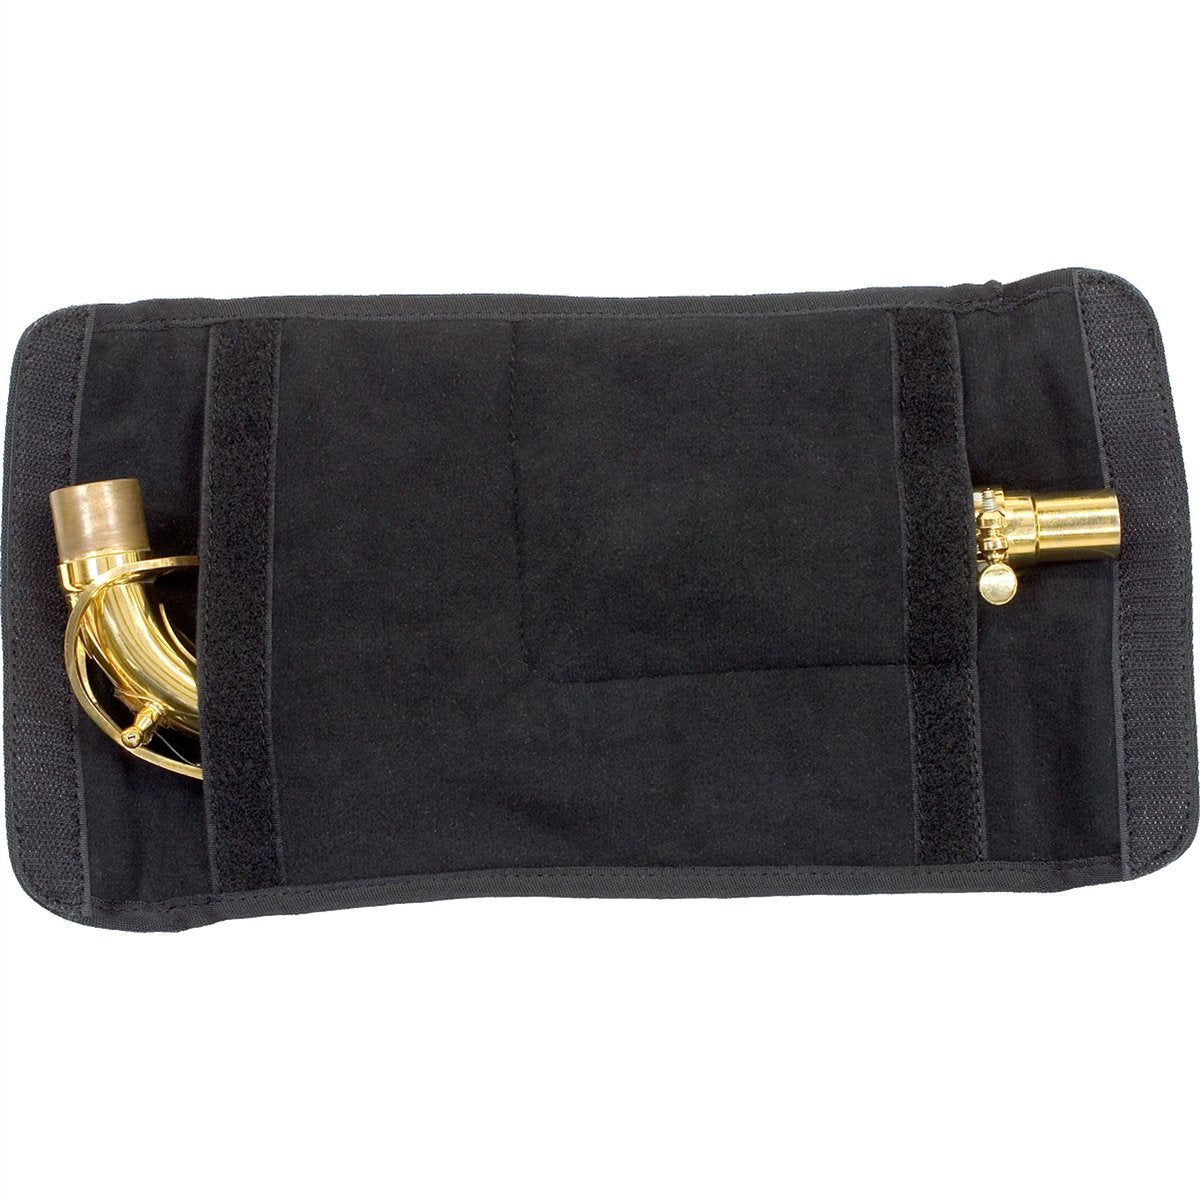 Protec - Neck & Mouthpiece In-Bell Pouch (for Alto/Tenor Saxophone)-Accessories-Protec-Music Elements